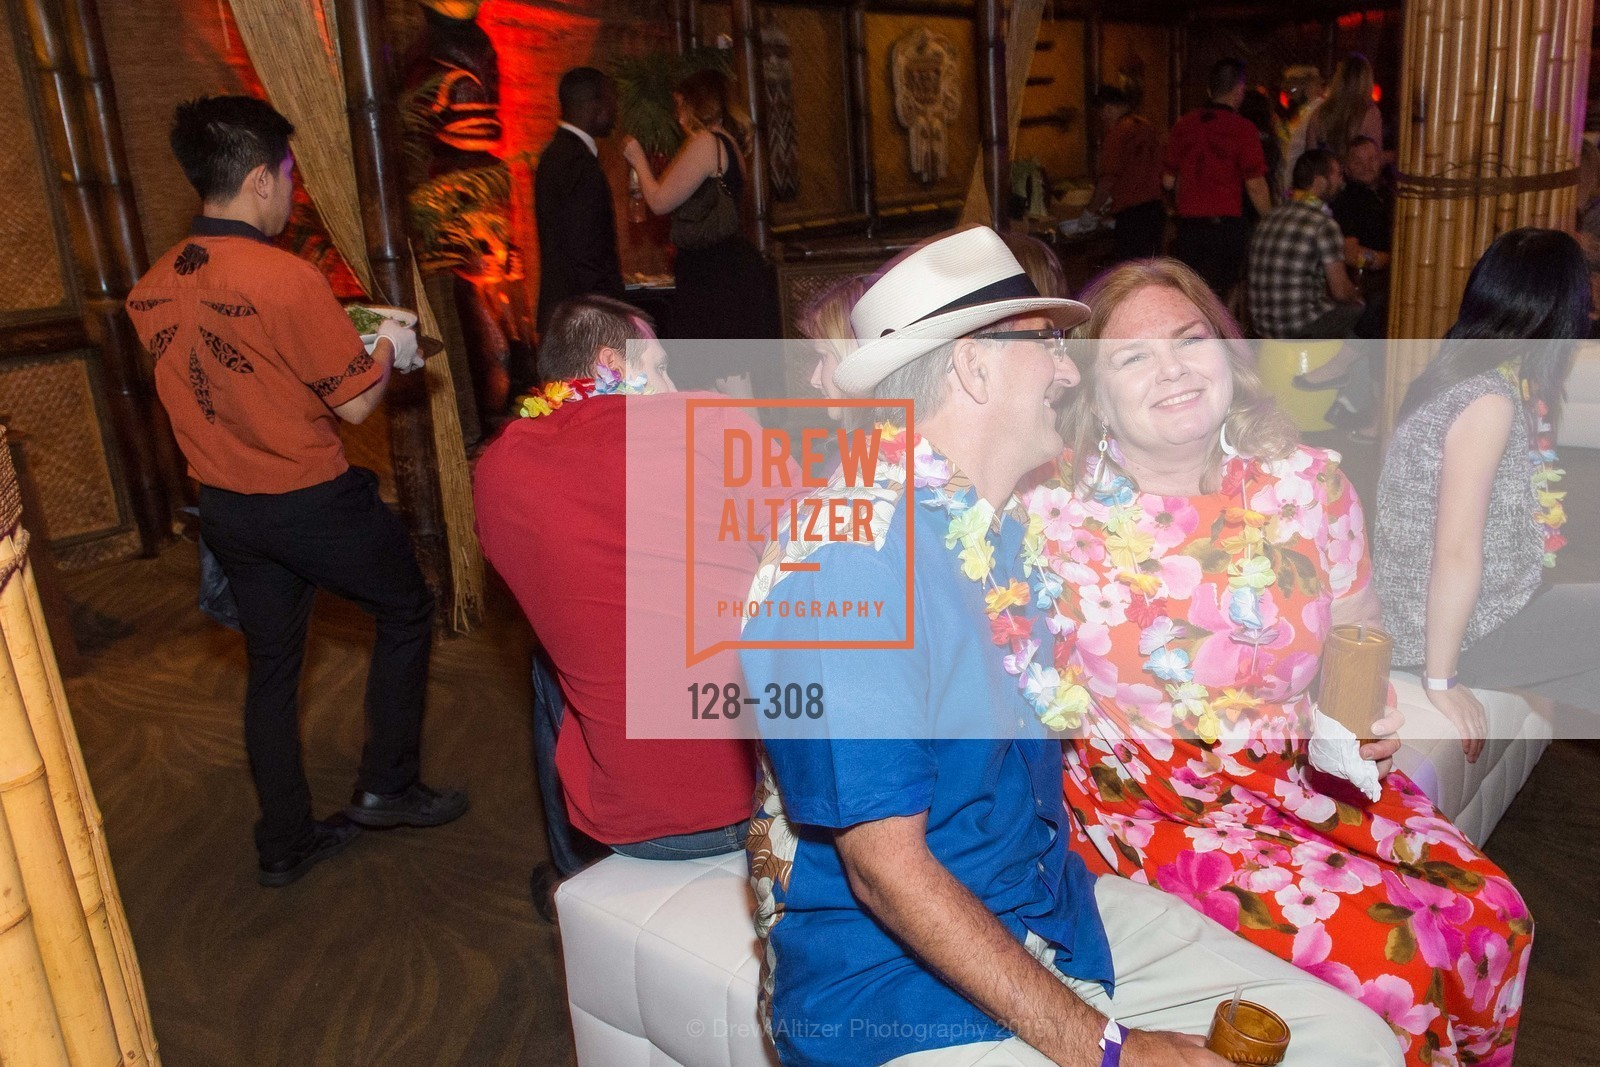 Kevin Rockwell, Karen Lodder, Tonga Room & Hurricane Bar Celebrates 70 Years of Tiki Glory, Fairmont, September 23rd, 2015,Drew Altizer, Drew Altizer Photography, full-service agency, private events, San Francisco photographer, photographer california